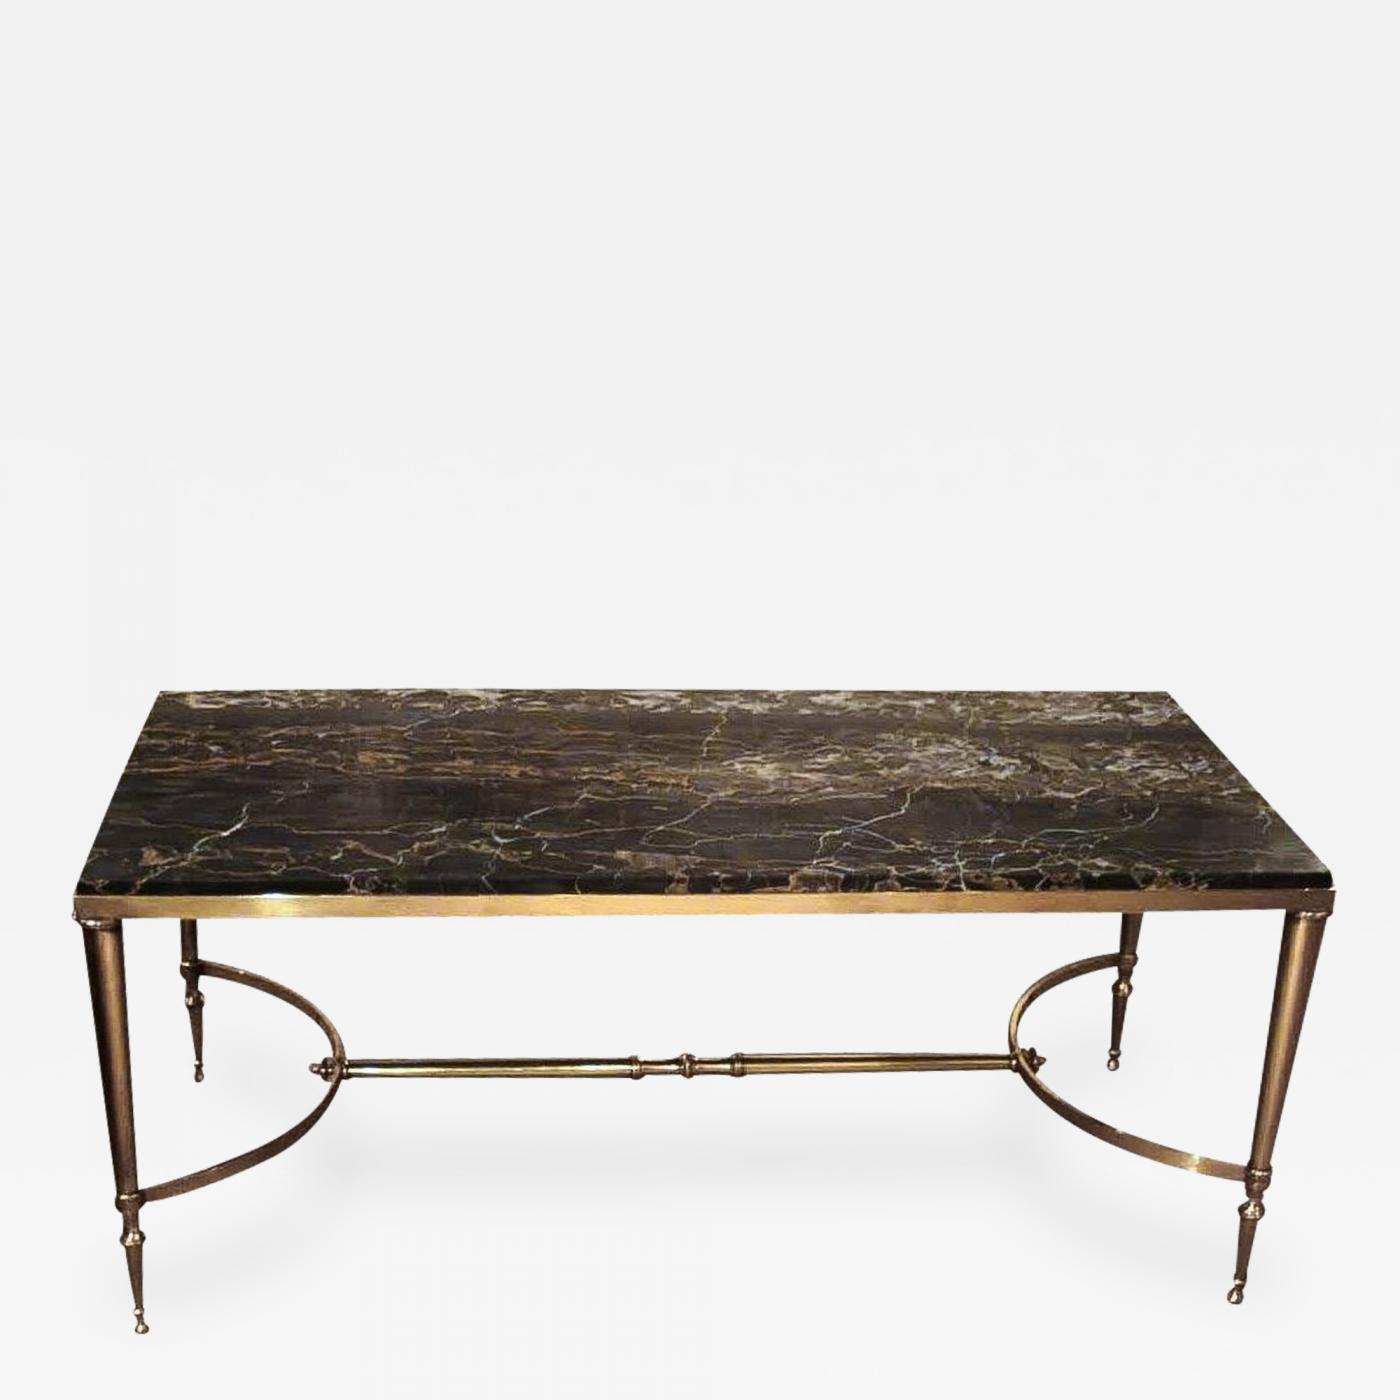 Marble Top Brass Coffee Table.Maison Jansen 1950 Maison Jansen Brass Coffee Table With Black Marble Top